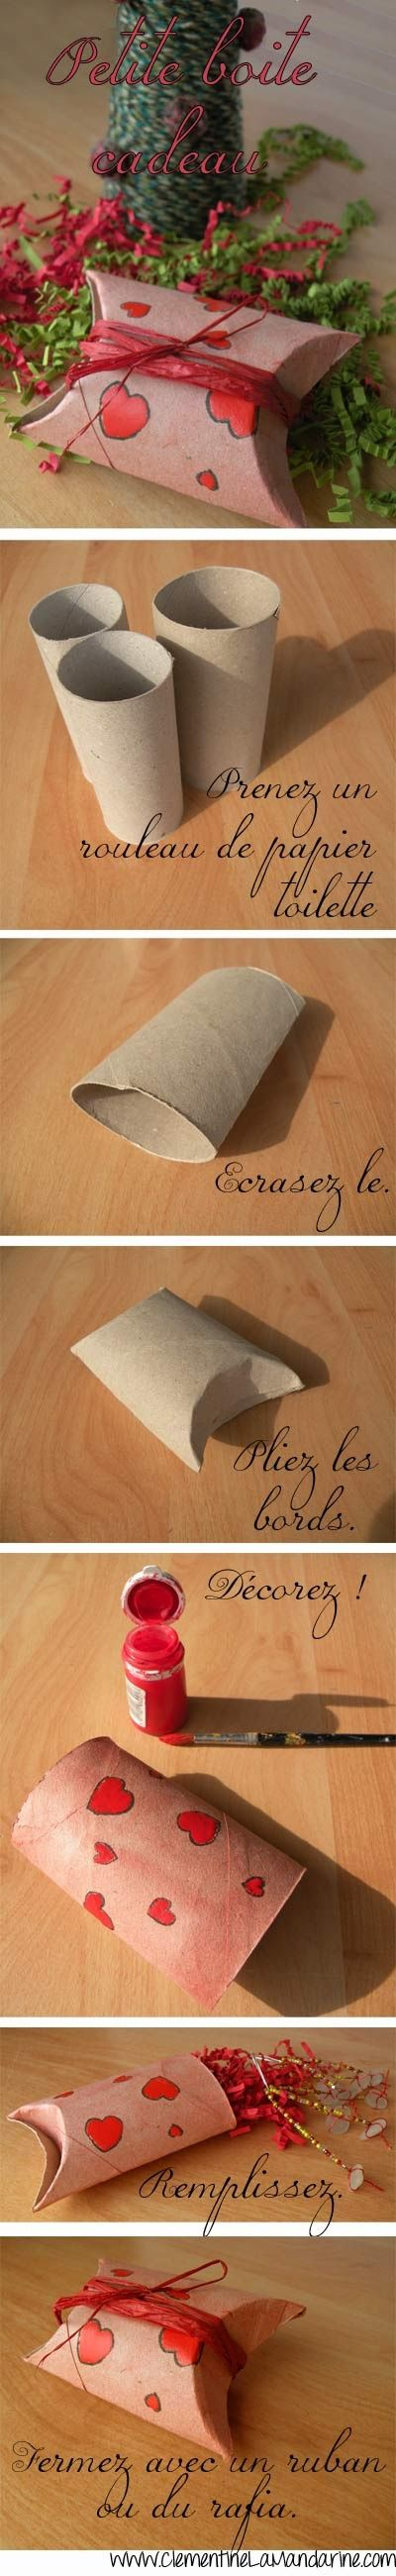 What a superb idea for recycling toilet paper rolls. Using a paper towel roll and the same technique, you could utilize it for longer gifts such as pencils, pens, wooden utensils, etc.